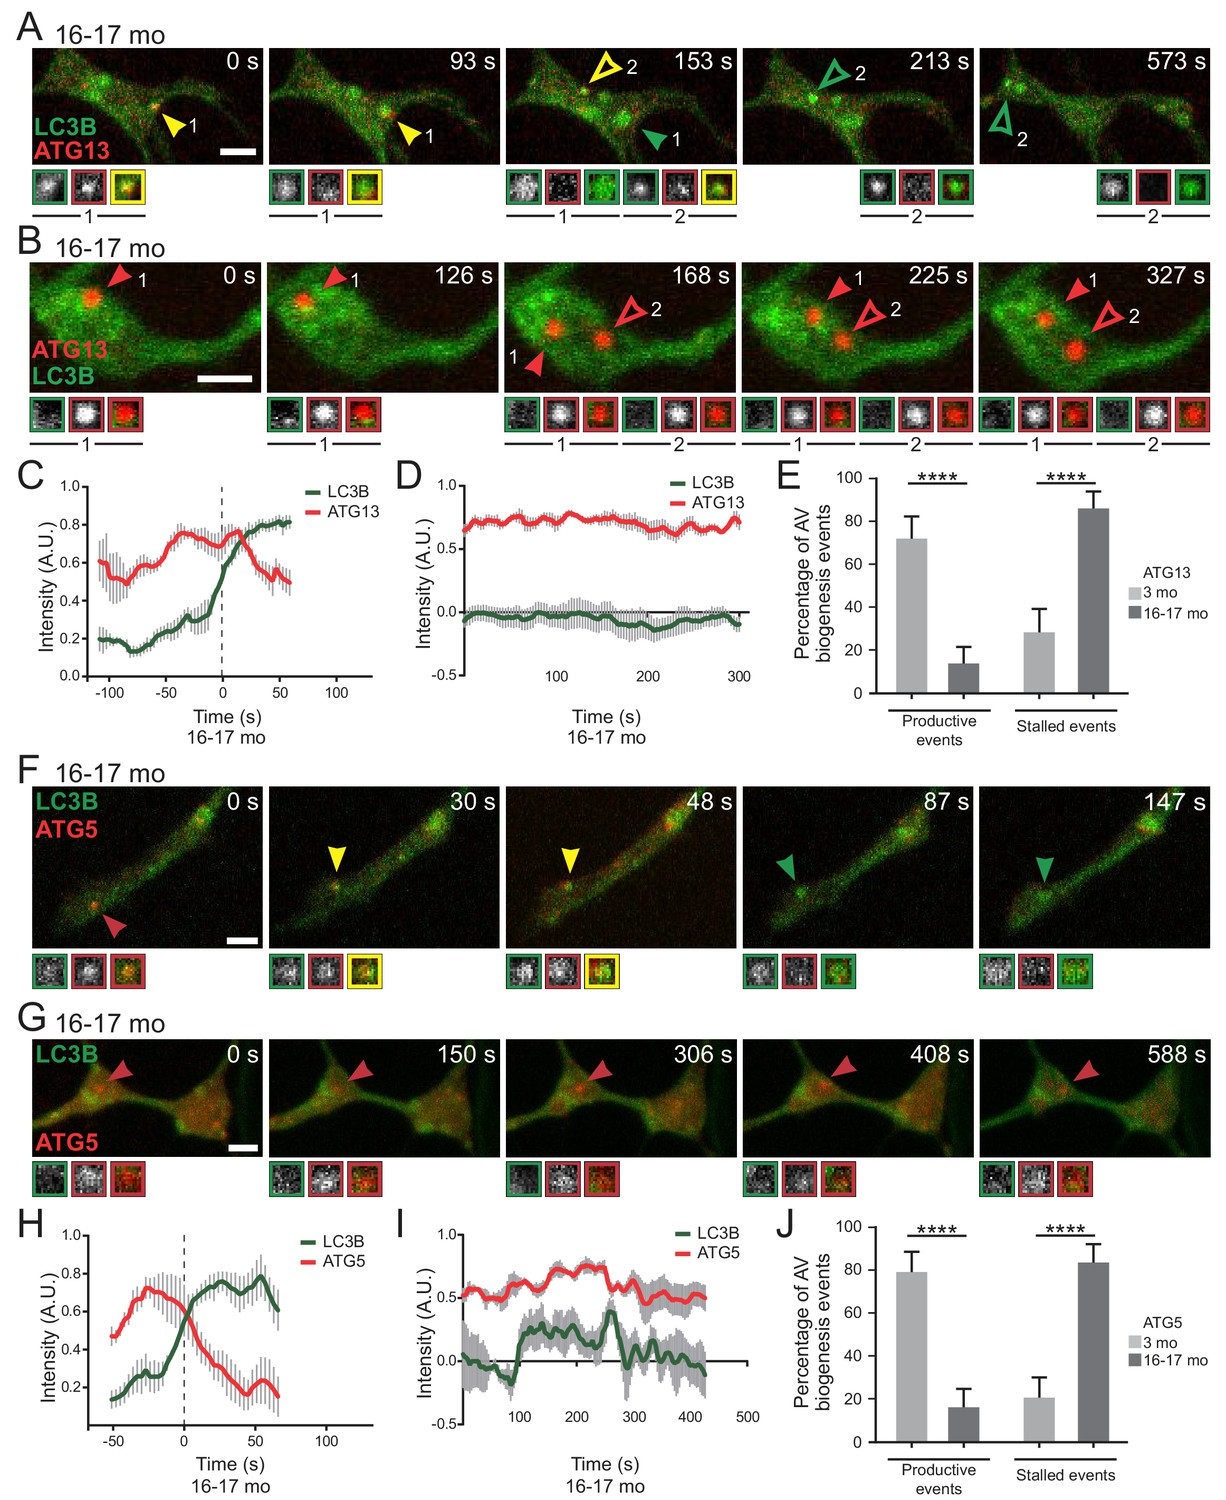 Expression of WIPI2B counteracts age-related decline in